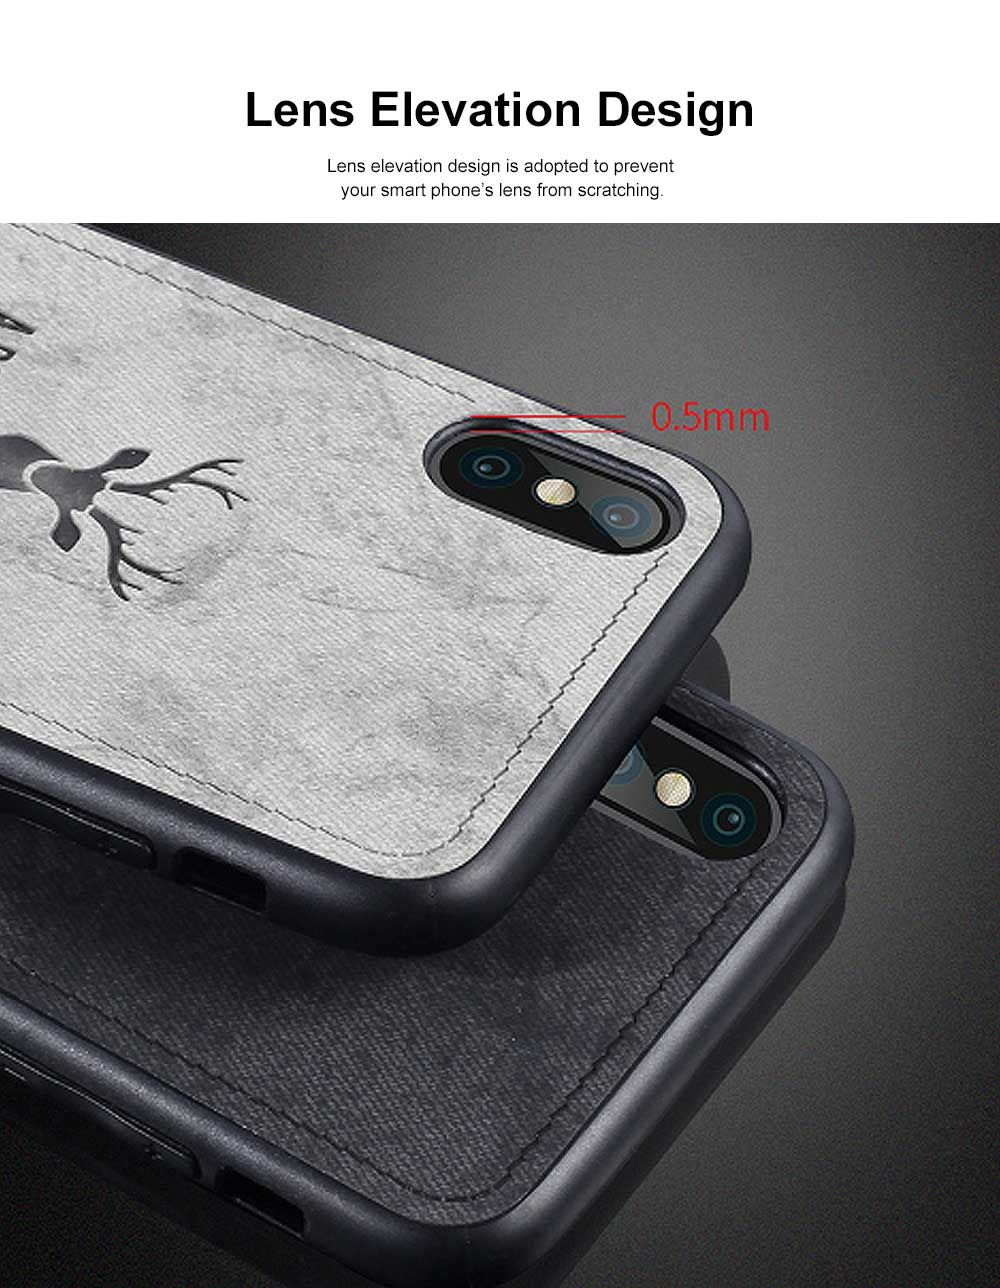 Elk Creative Silicone Phone Case, Creative Case Cover, Characteristic Linen Grain, Soft Silicone Case Cover, Apply for iPhone 5